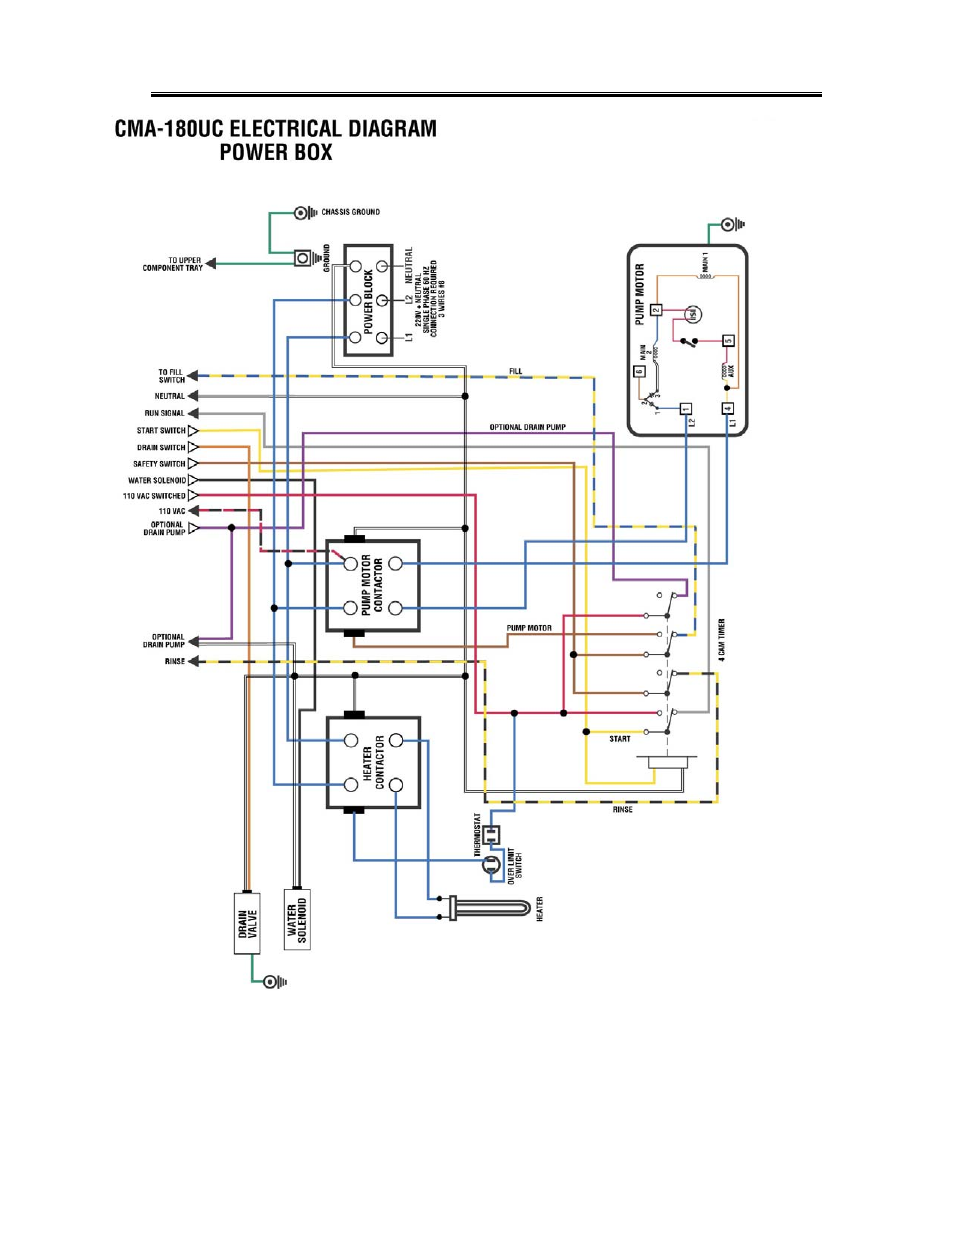 Electrical diagram | CMA Dishmachines CMA-180UC User Manual | Page 25 / 25